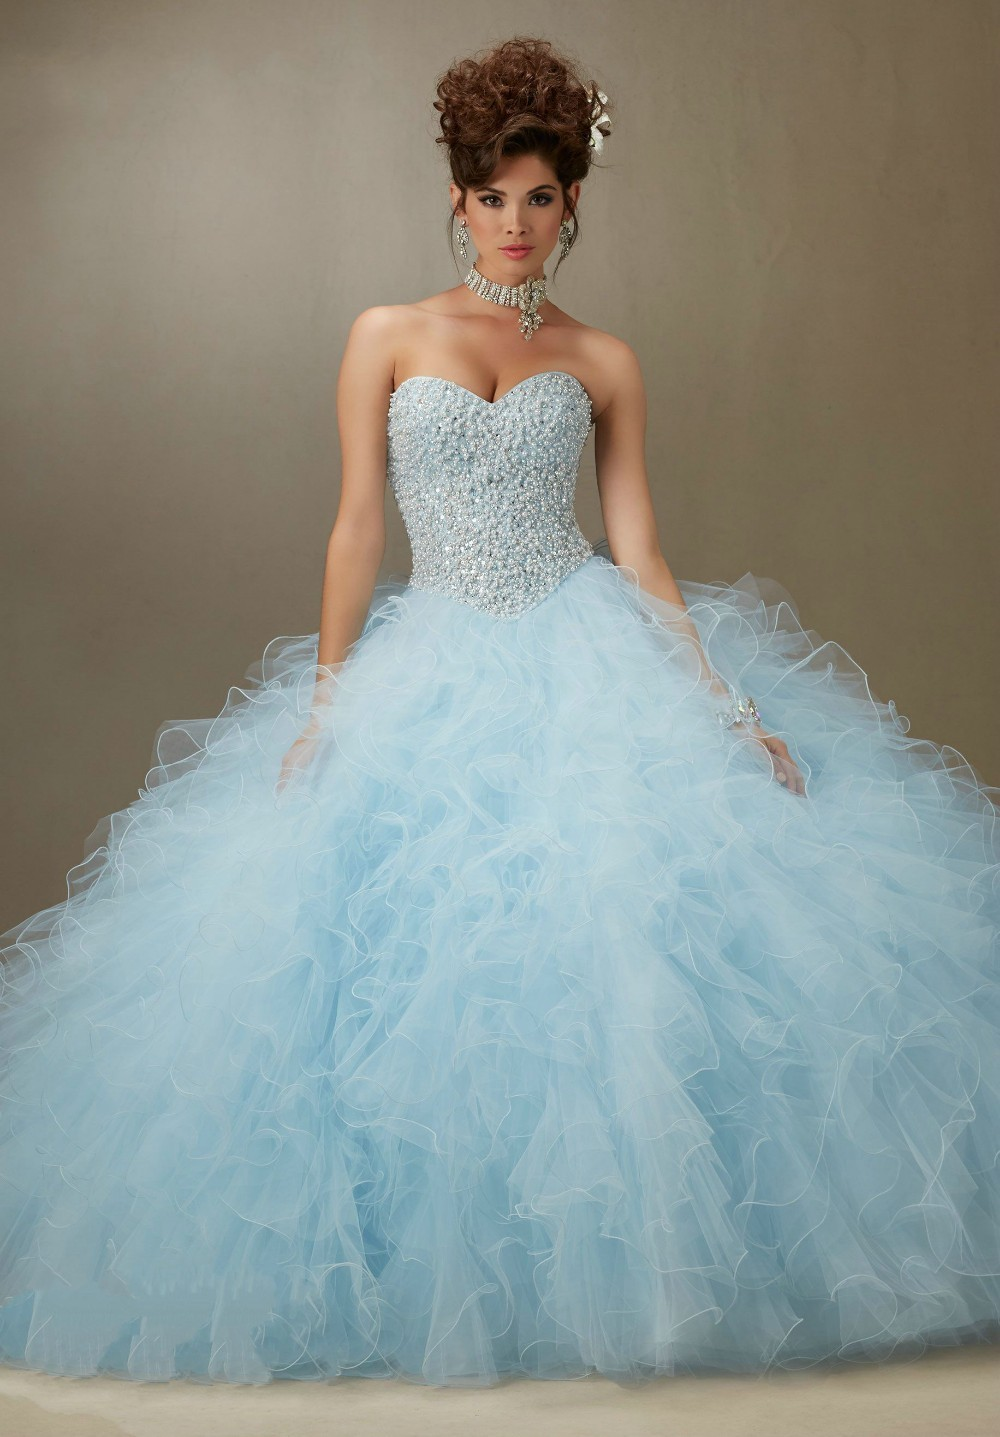 blue ball gowns page 37 - bcbg